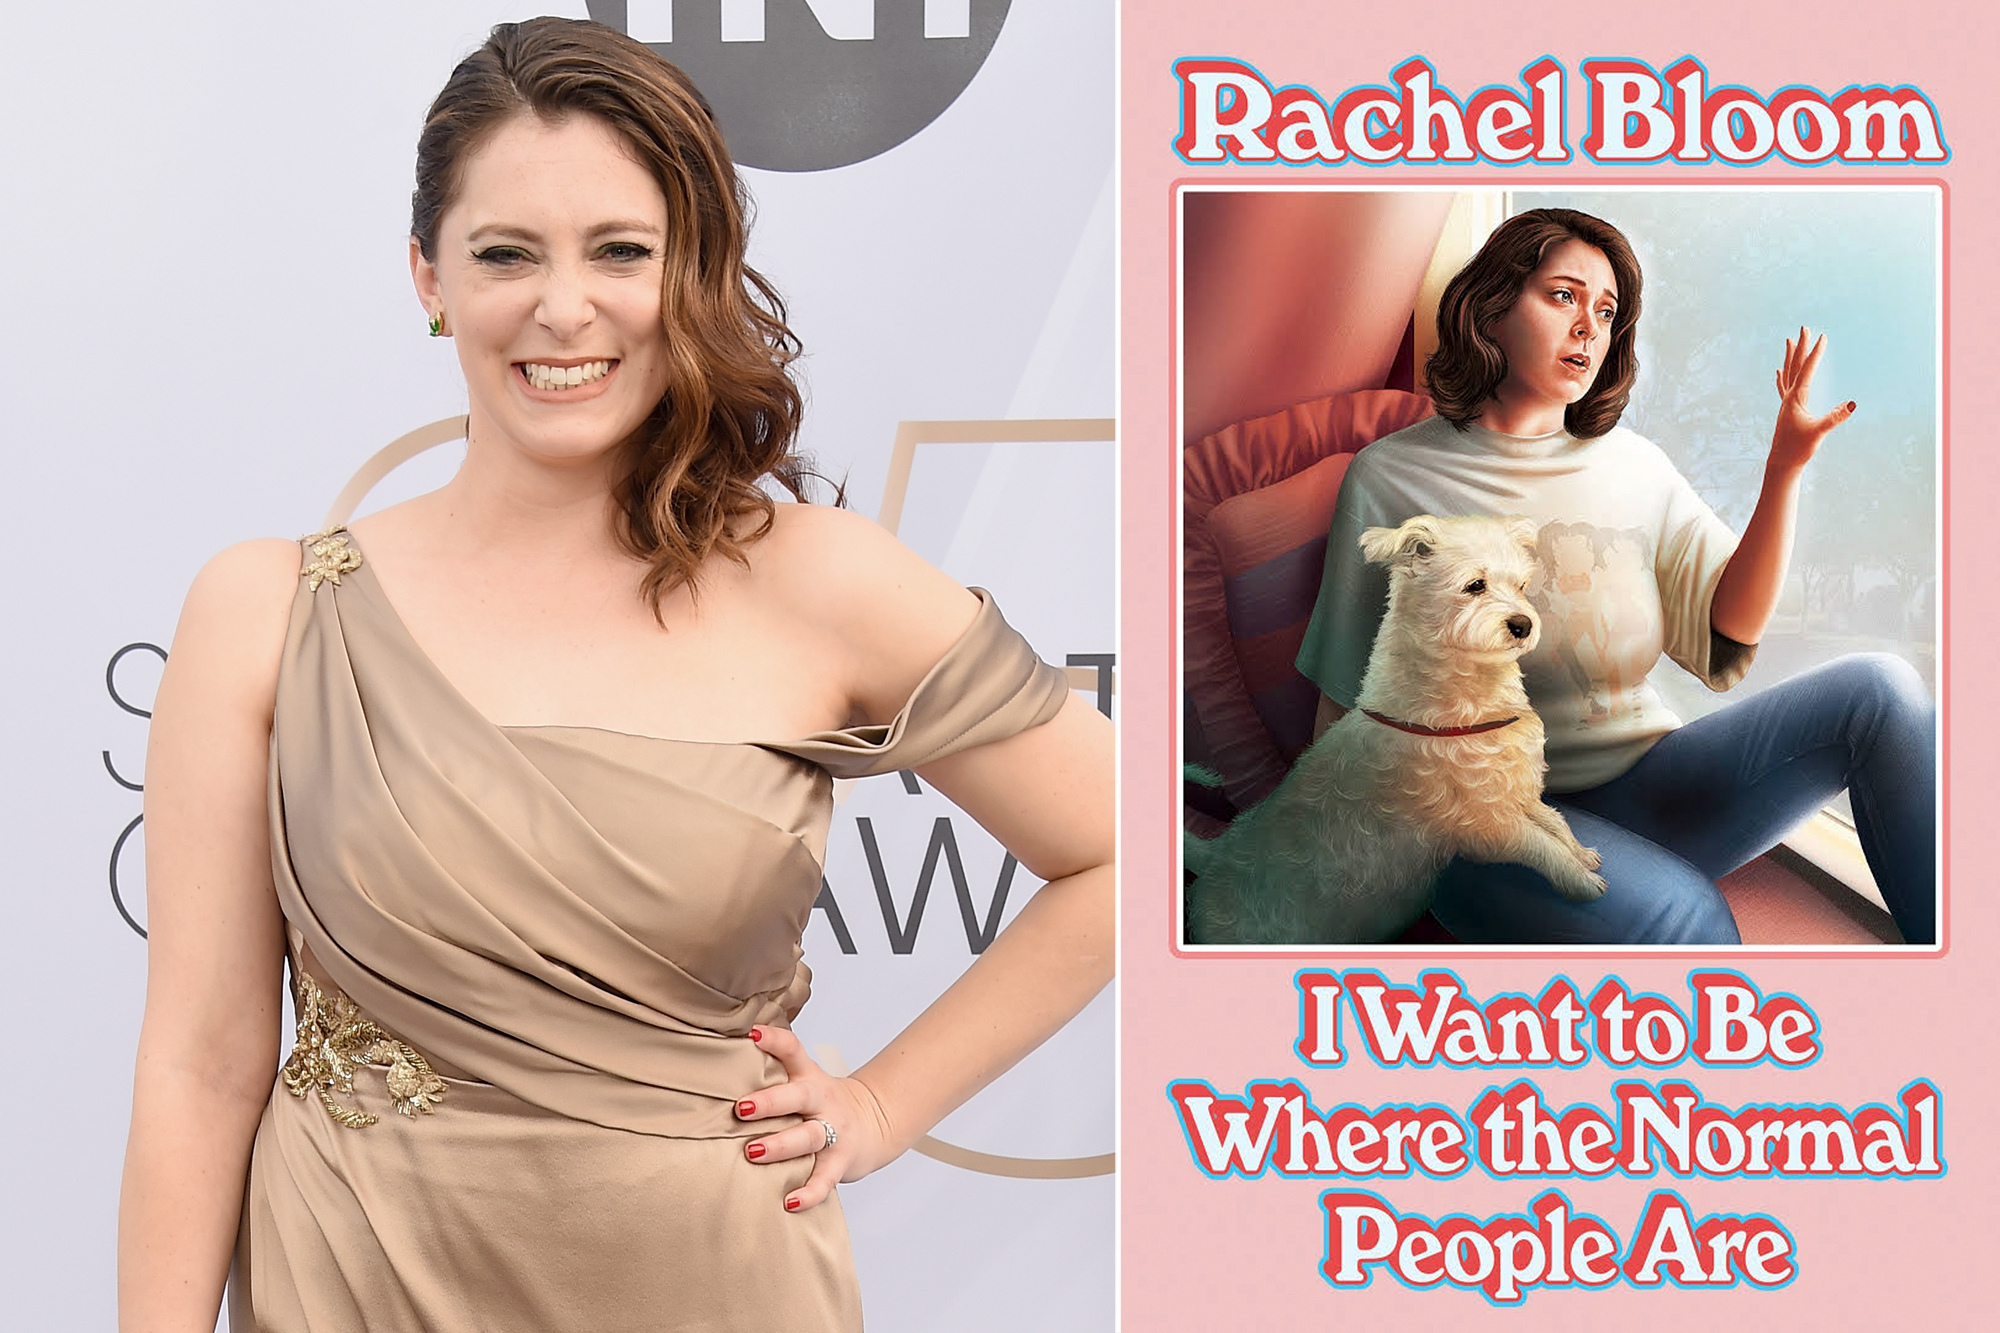 Rachel Bloom, I Want To Be Where The Normal People Are